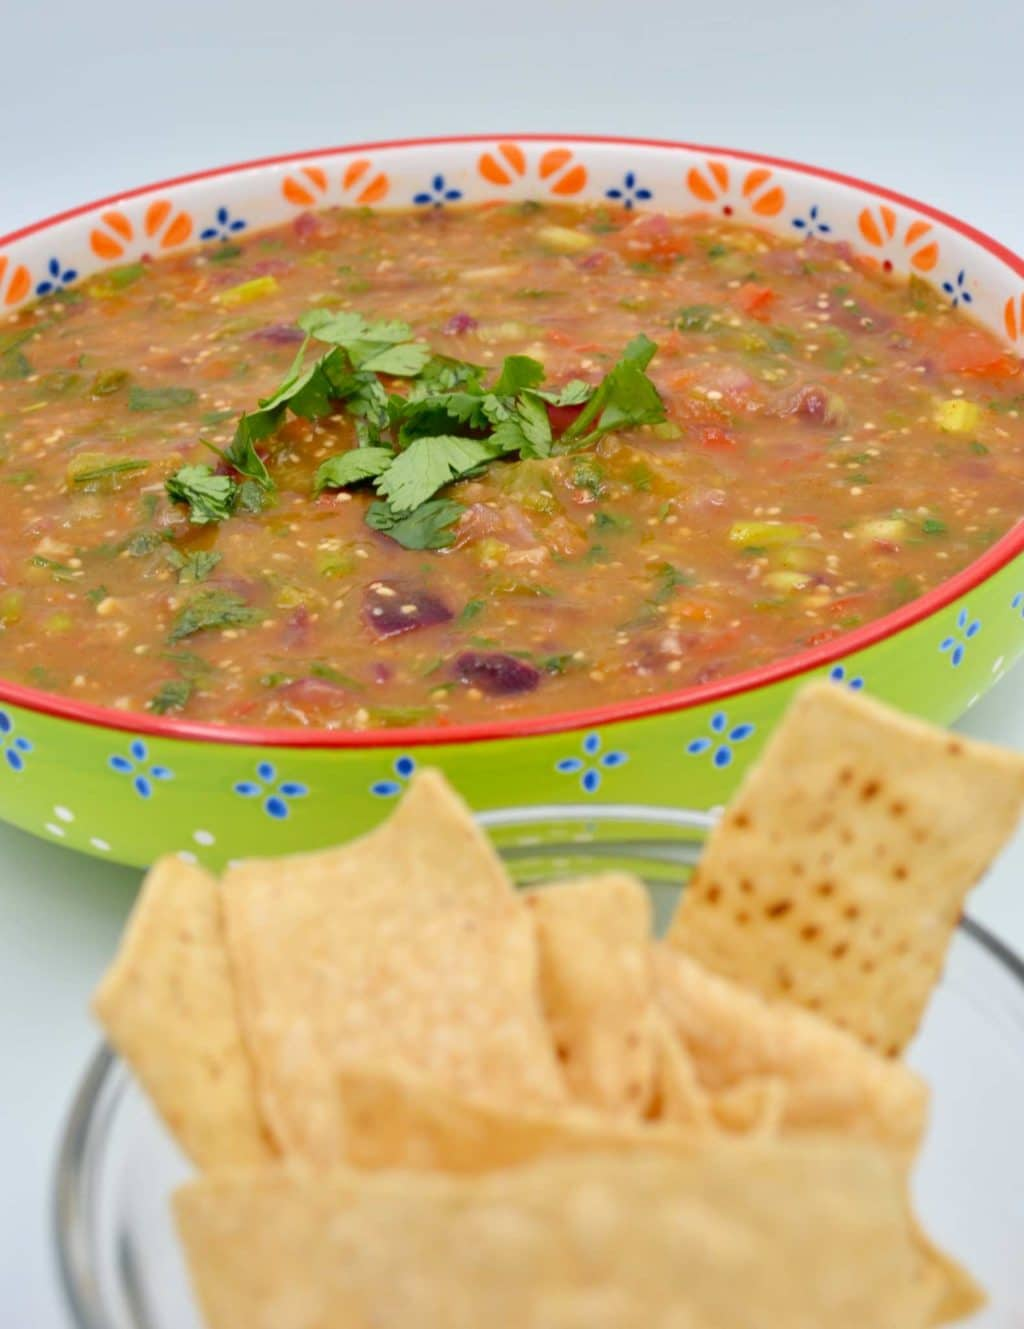 Spicy Tomatillo Salsa